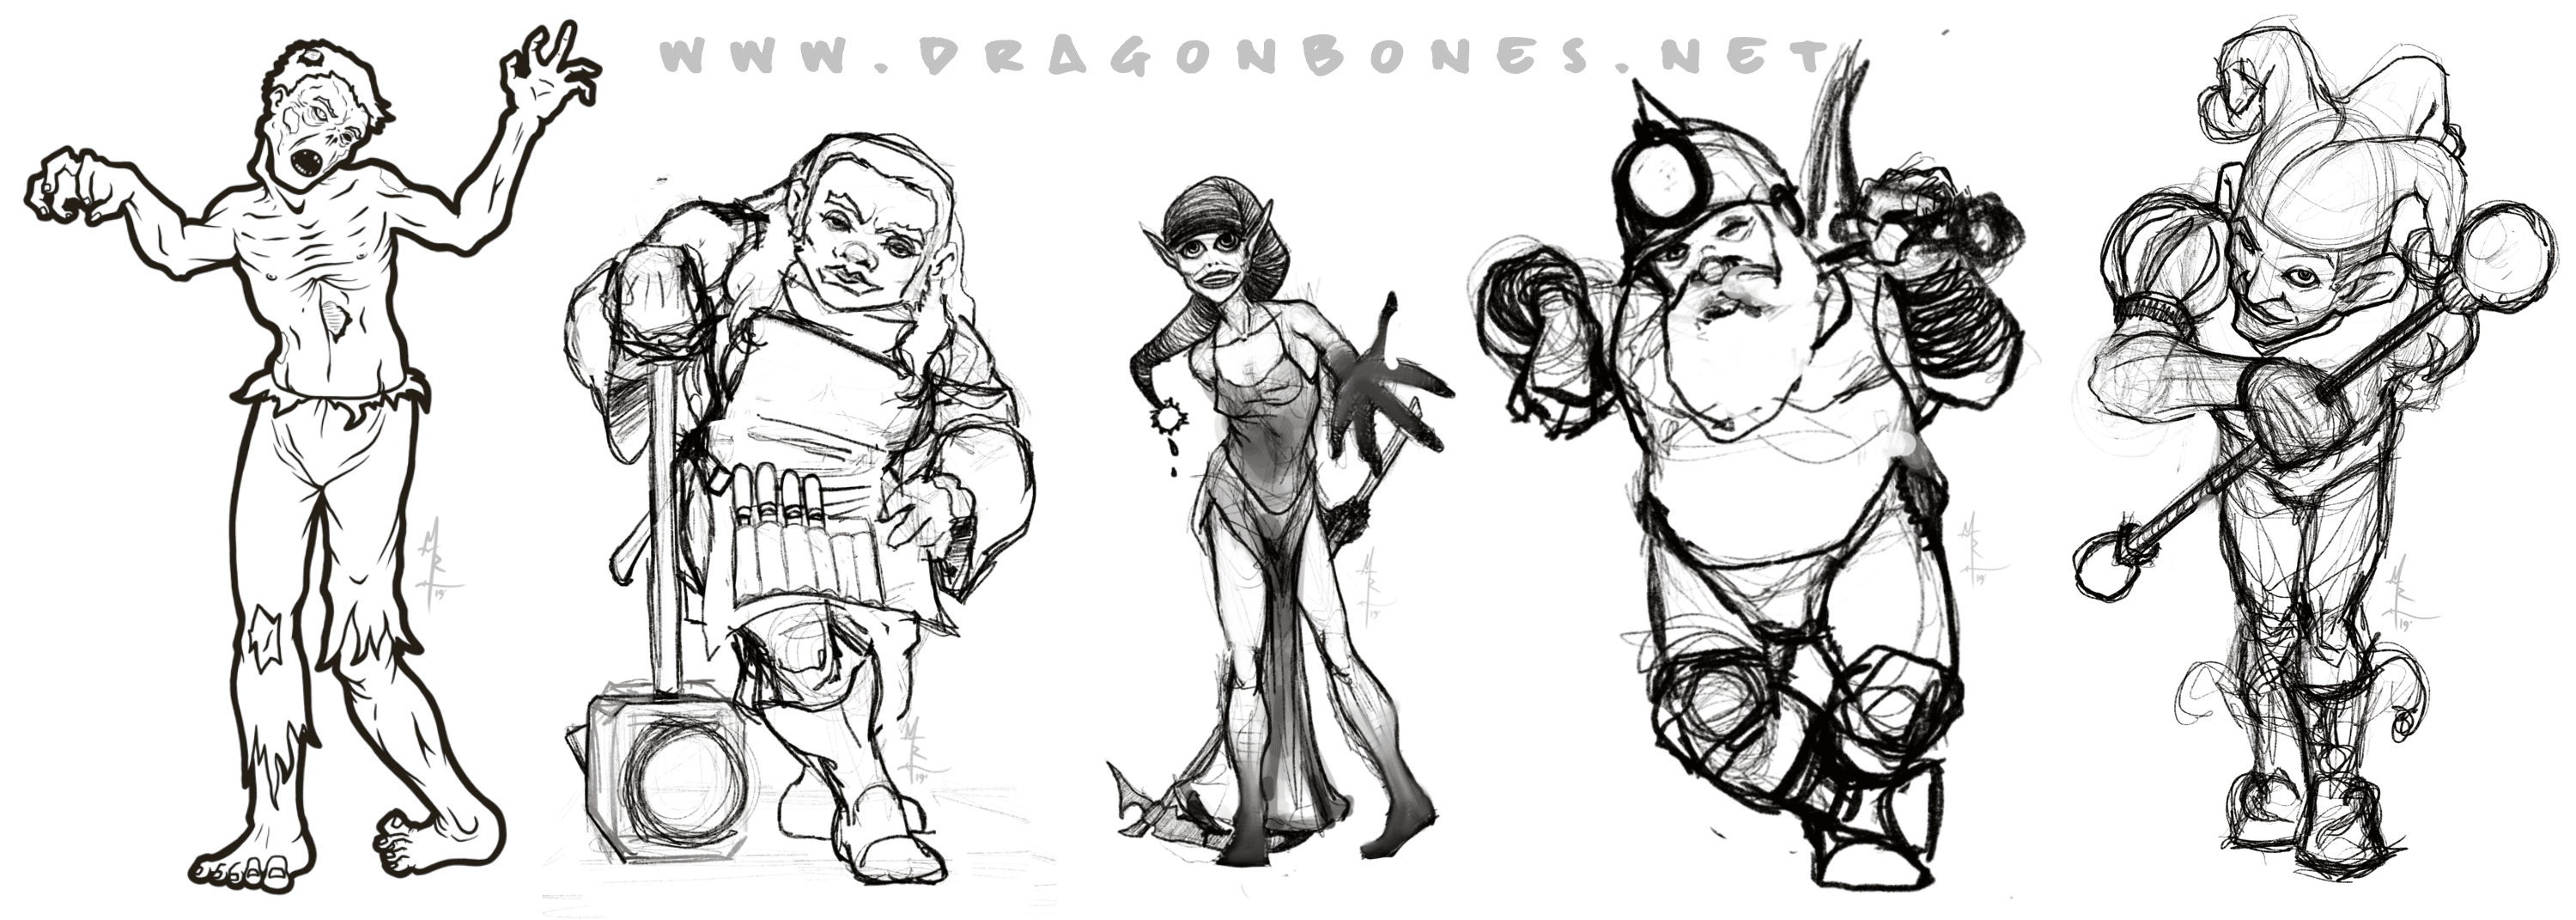 Sketches of a few of the characters for an upcoming game by IonQuest Games!